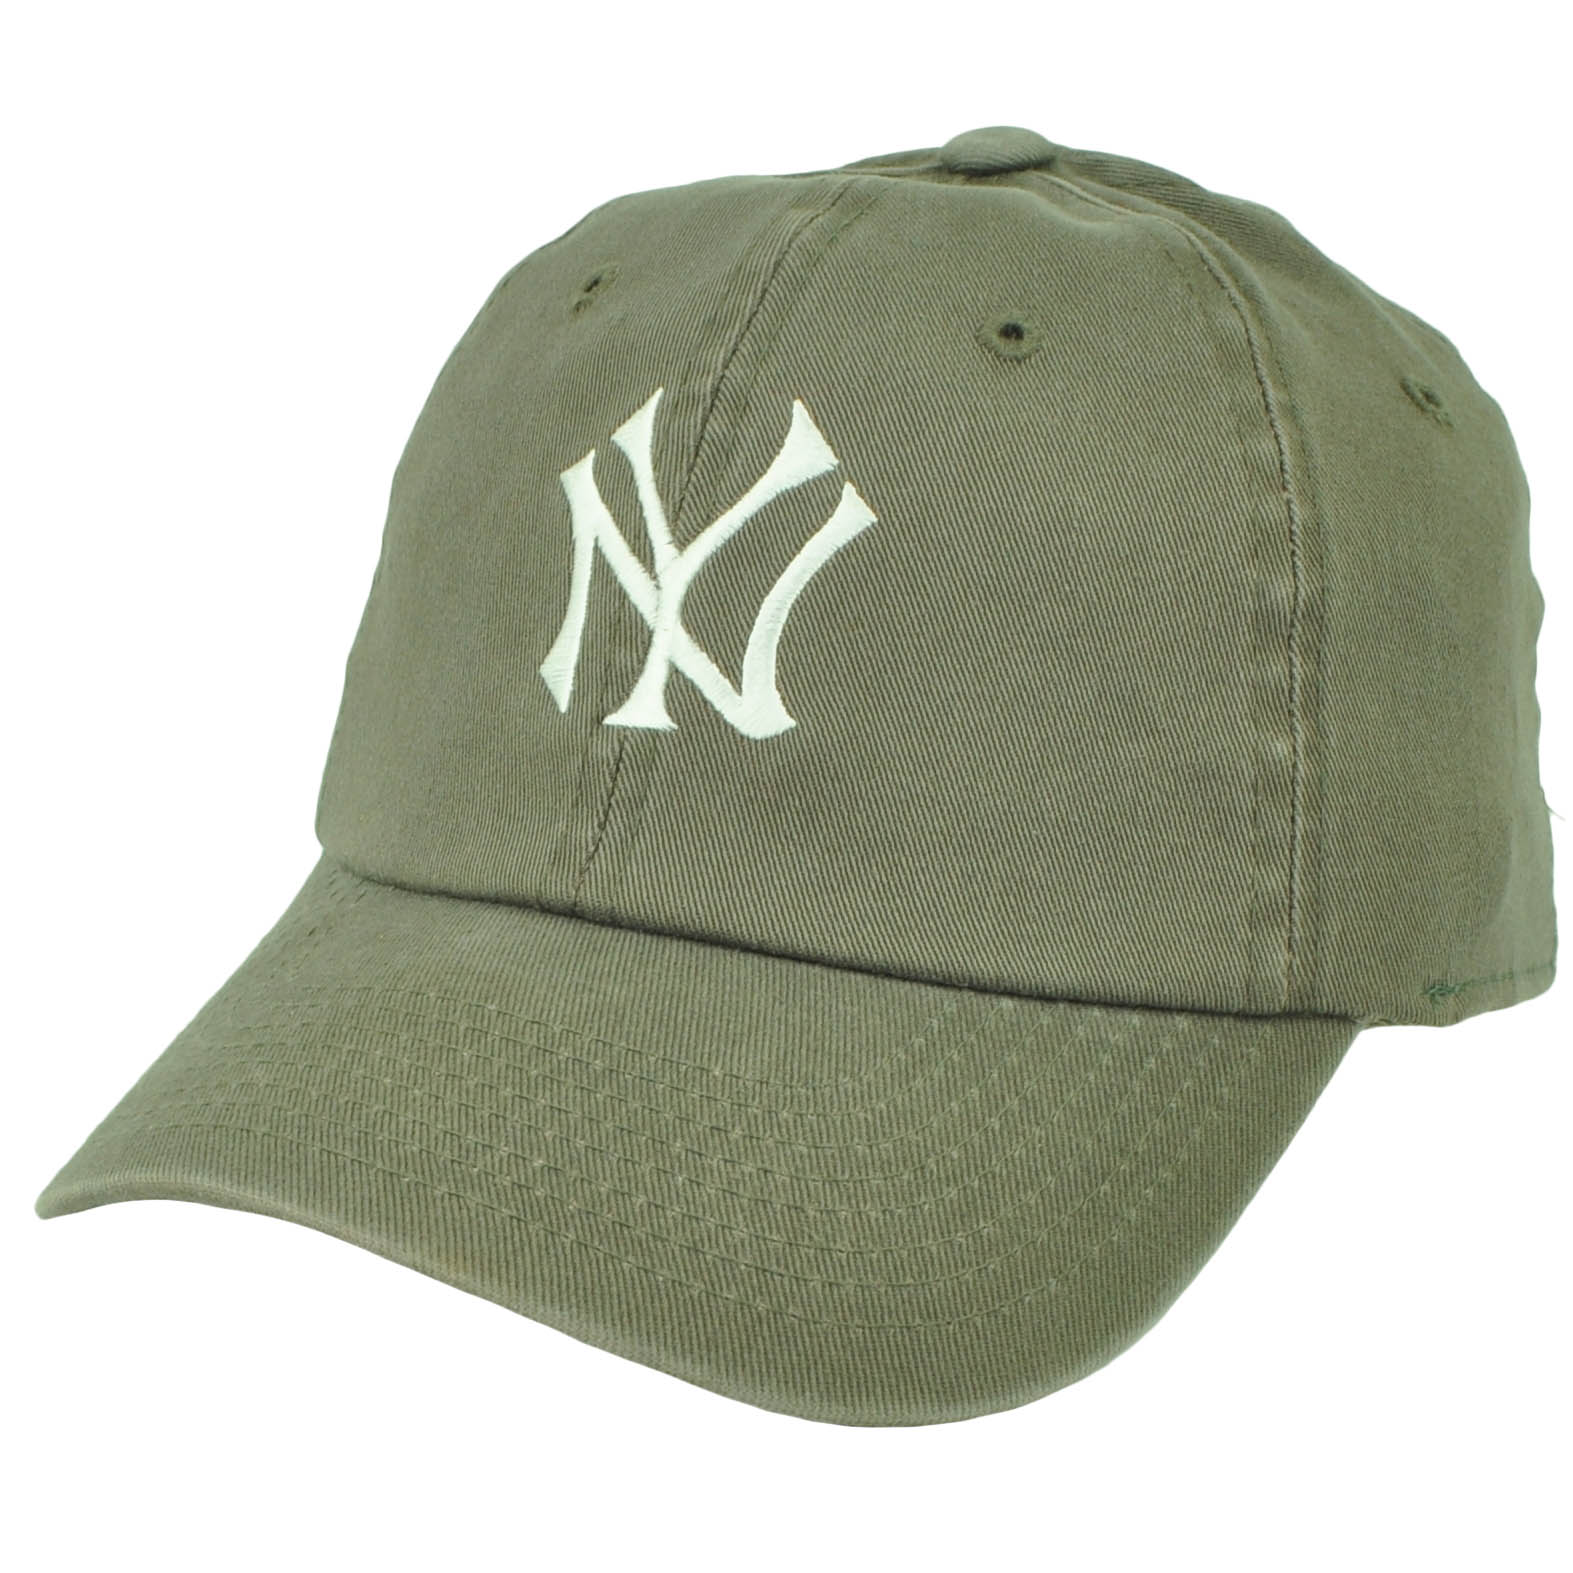 eea46a6ba1 New York Yankees American Needle Fitted Small Medium Stretch Hat Cap Faded  Olive